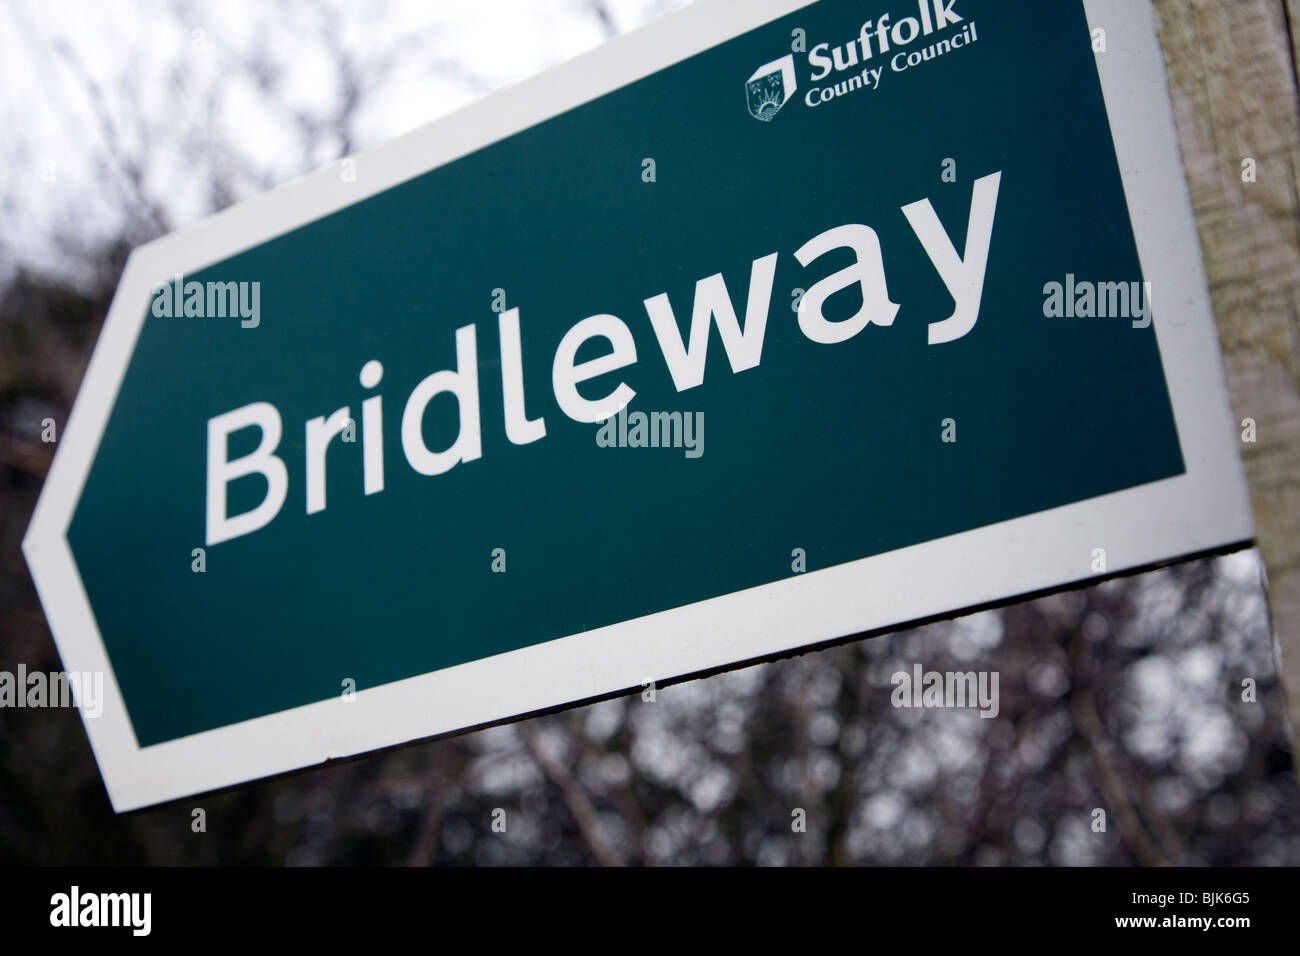 Bridleway sign Suffolk County Council - Stock Image